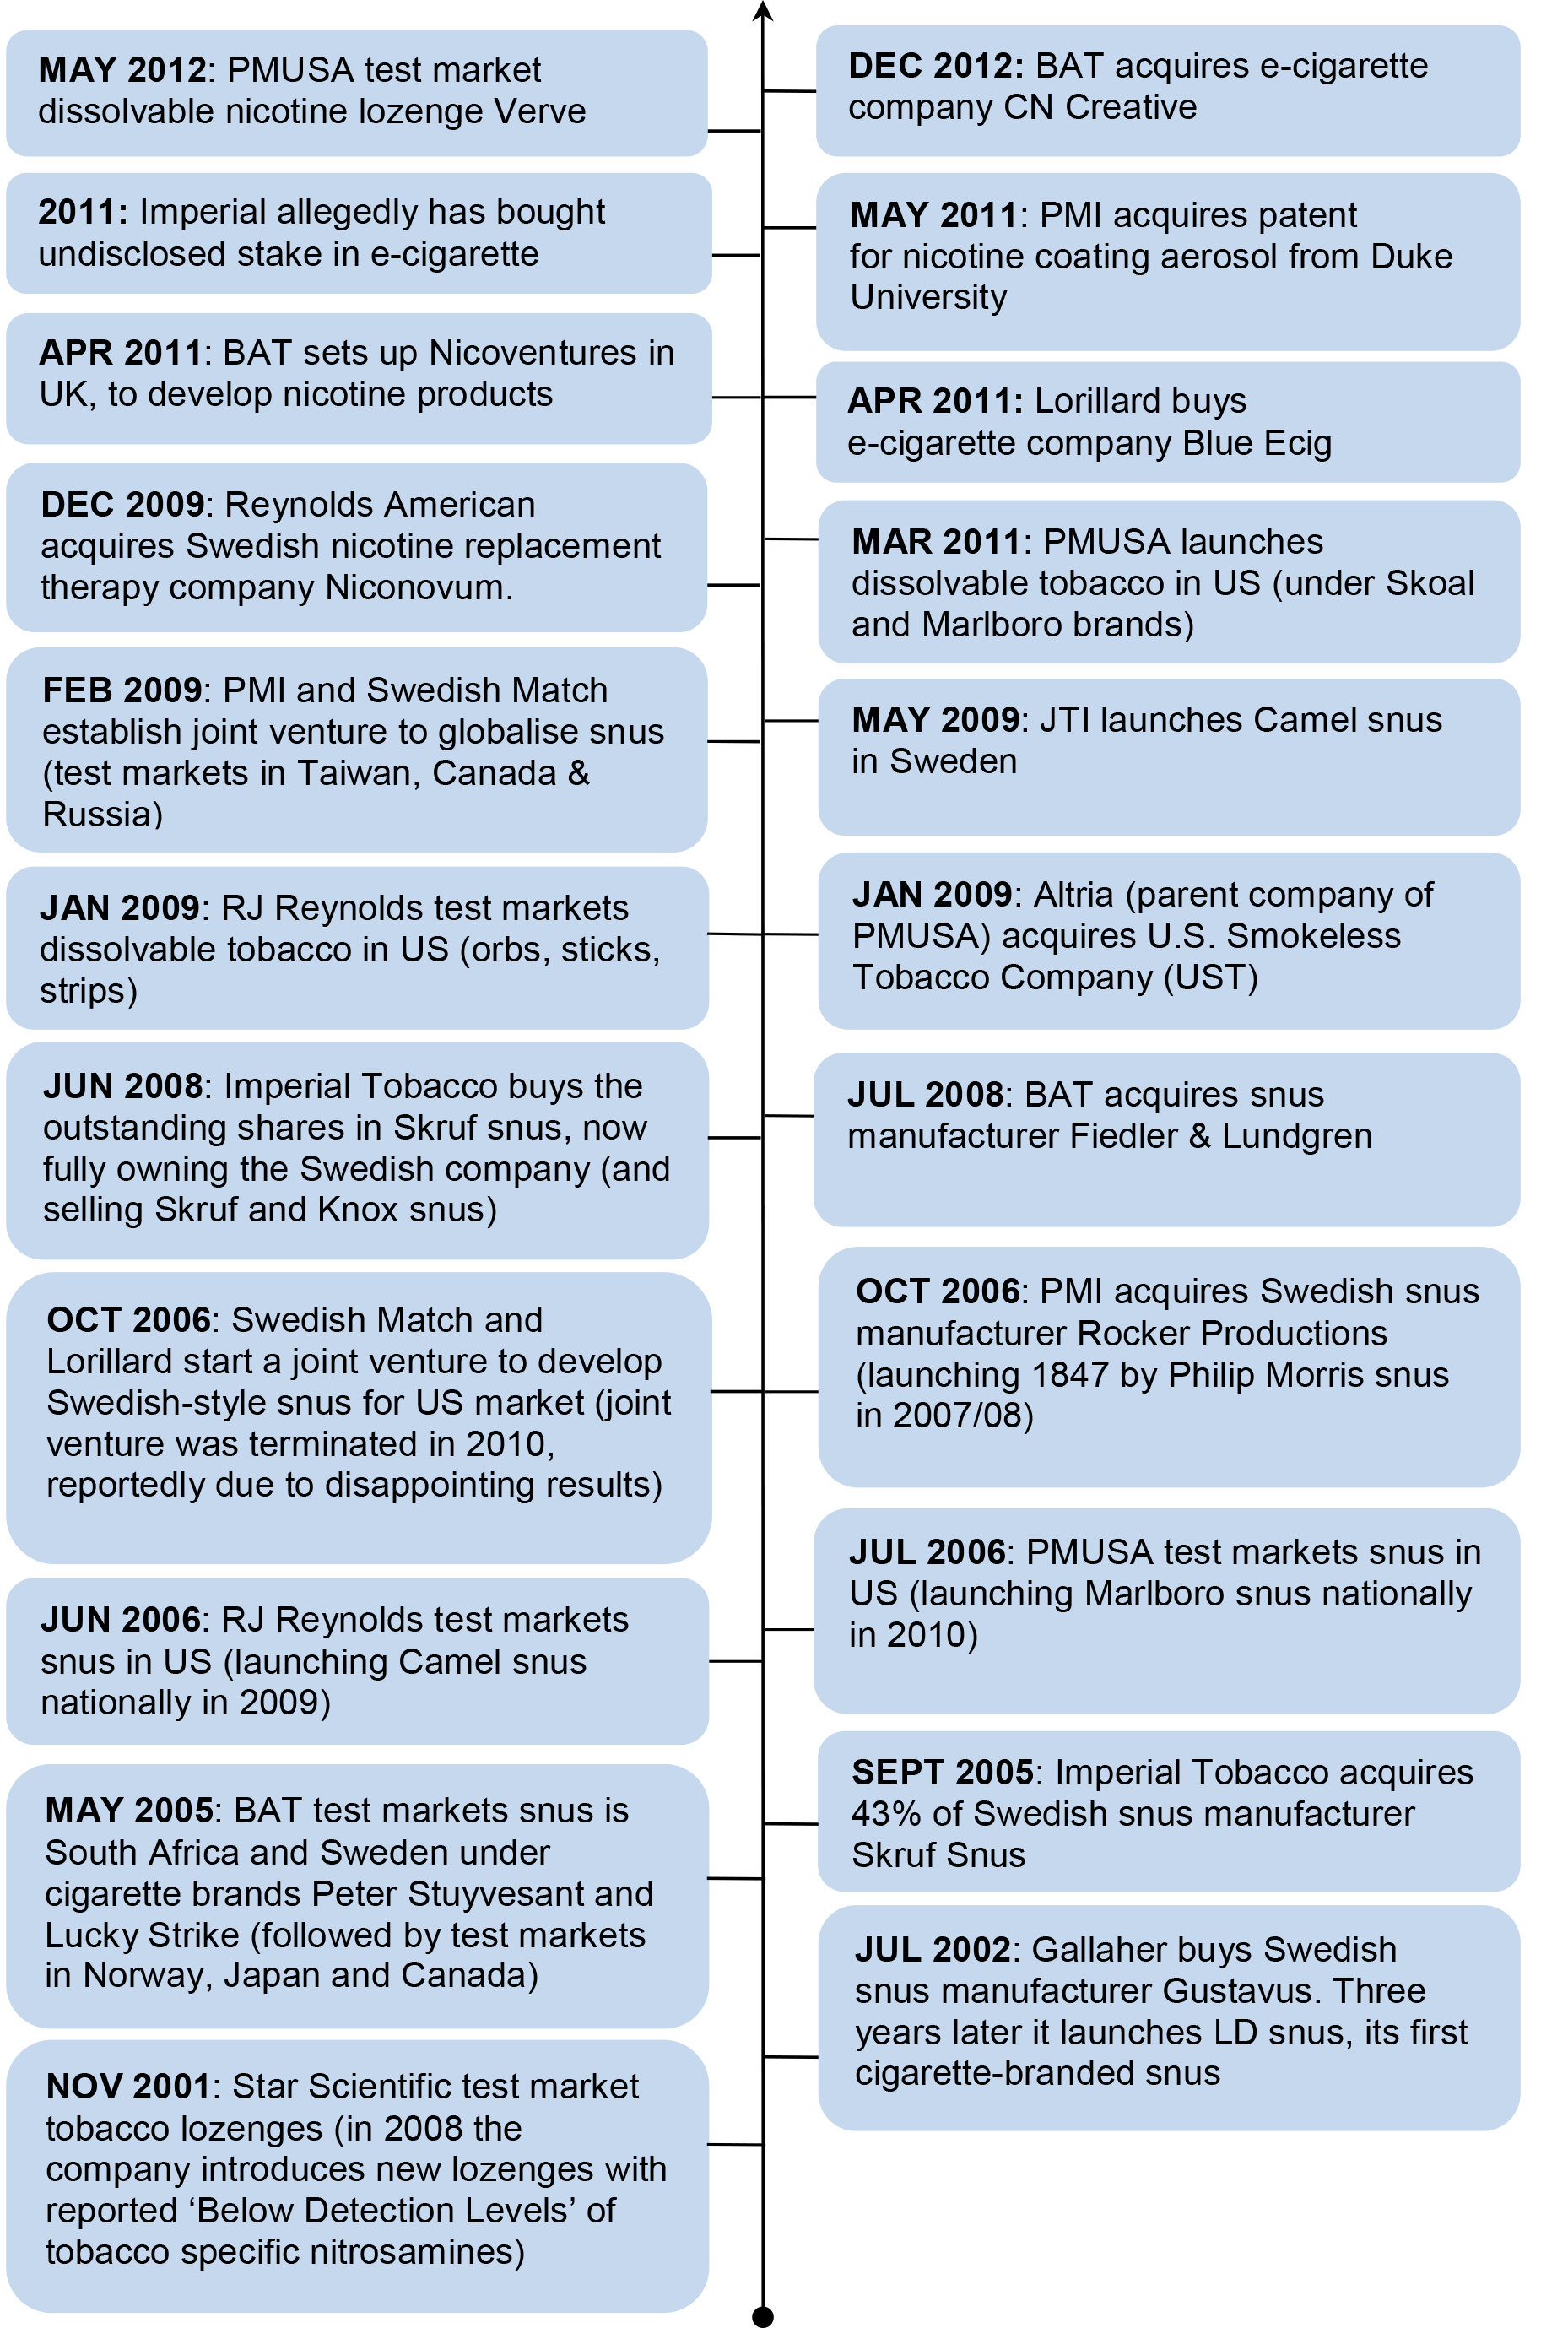 Timeline of TTC investment and activities in smokeless tobacco and nicotine markets.